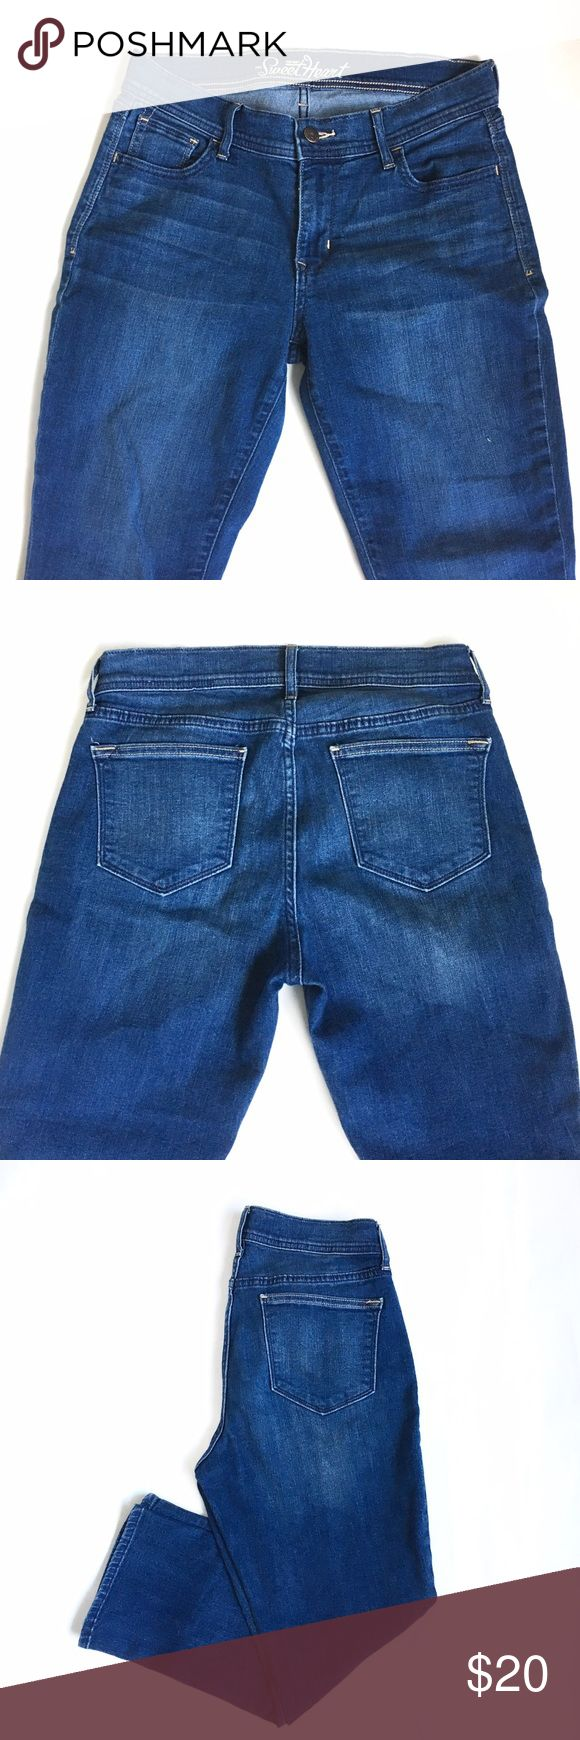 """Old Navy Sweetheart Skinny Kick Crop Jeans Flattering, cute, and kind of vintage looking. High rise waist. Super comfortable and stretchy. Slight flare at cropped bottom. Inseam 23.5"""", waist 14.5"""", inseam 9"""". Old Navy Jeans Ankle & Cropped"""